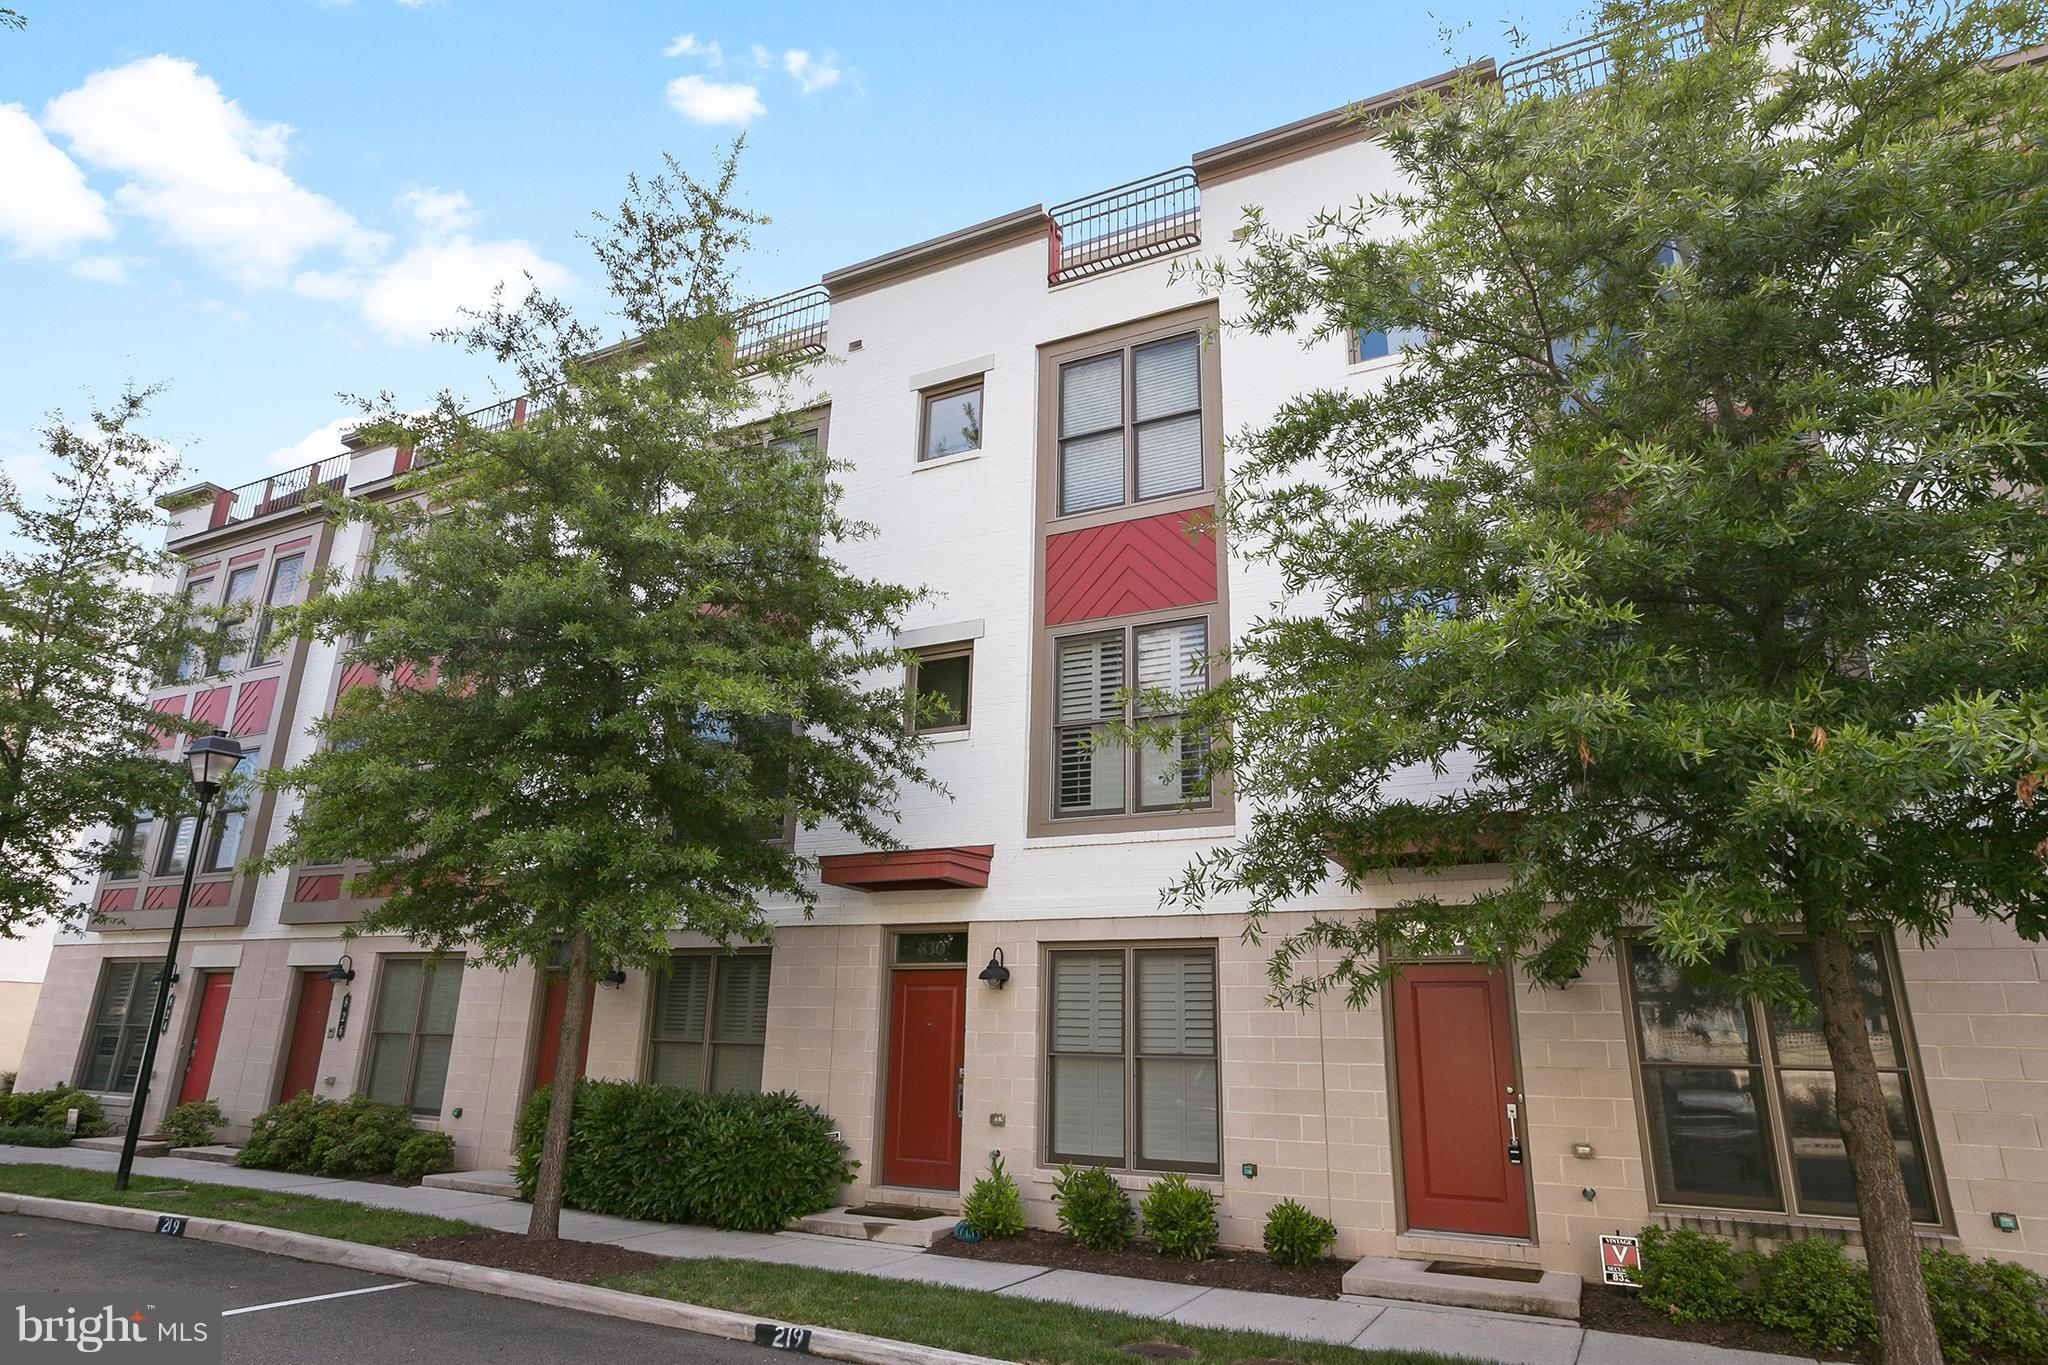 Beautiful EYA Townhome in Old Town. 4 levels with 1 deck off kitchen & 1 large sundeck off of 4th level! 1 car garage. 4 bedrooms/3.5 baths and just under 2,000 sqft. Walk to Braddock Rd Metro. Gourmet kitchen w/ SS appliances, granite counter tops. Open concept. Beds w/ attached bathrooms. 4th level loft/rec area, LL office/den. Walk to groceries, restaurants & shopping of Old Town!